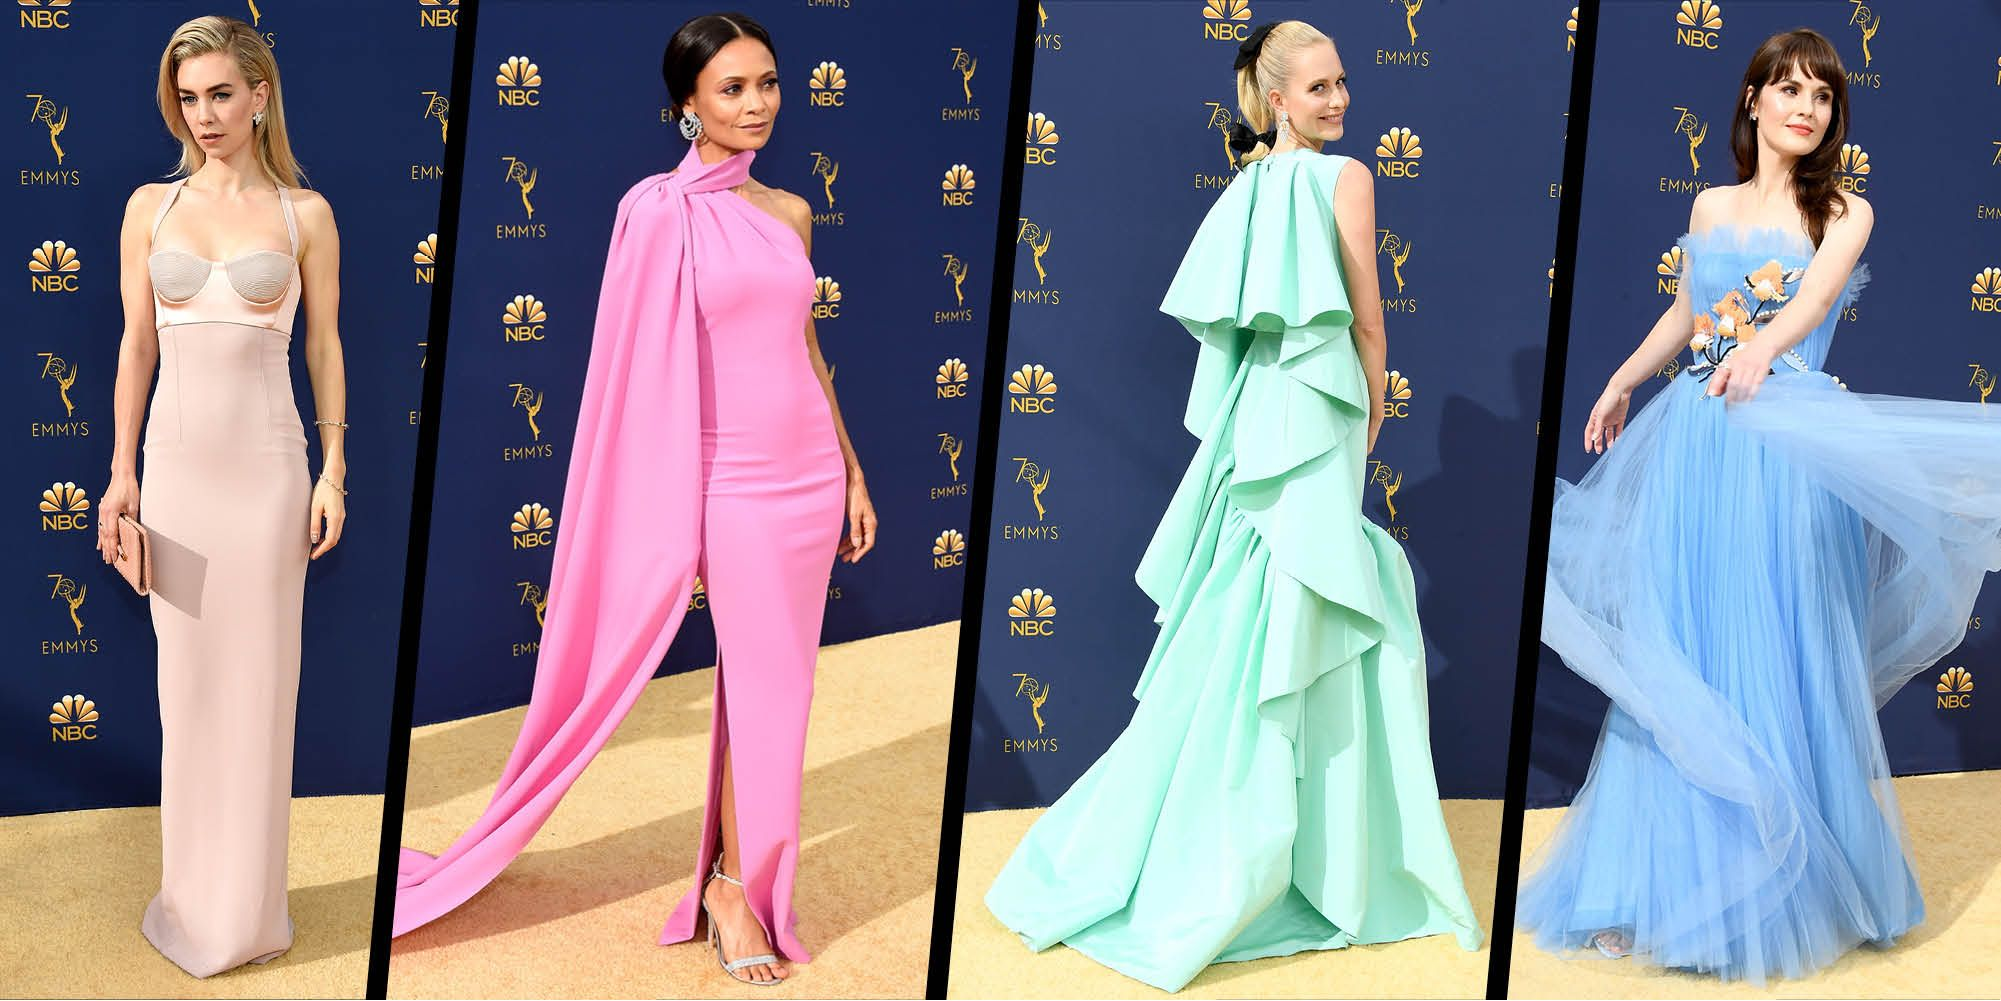 The 10 Best Dressed Guests At The 2018 Emmys